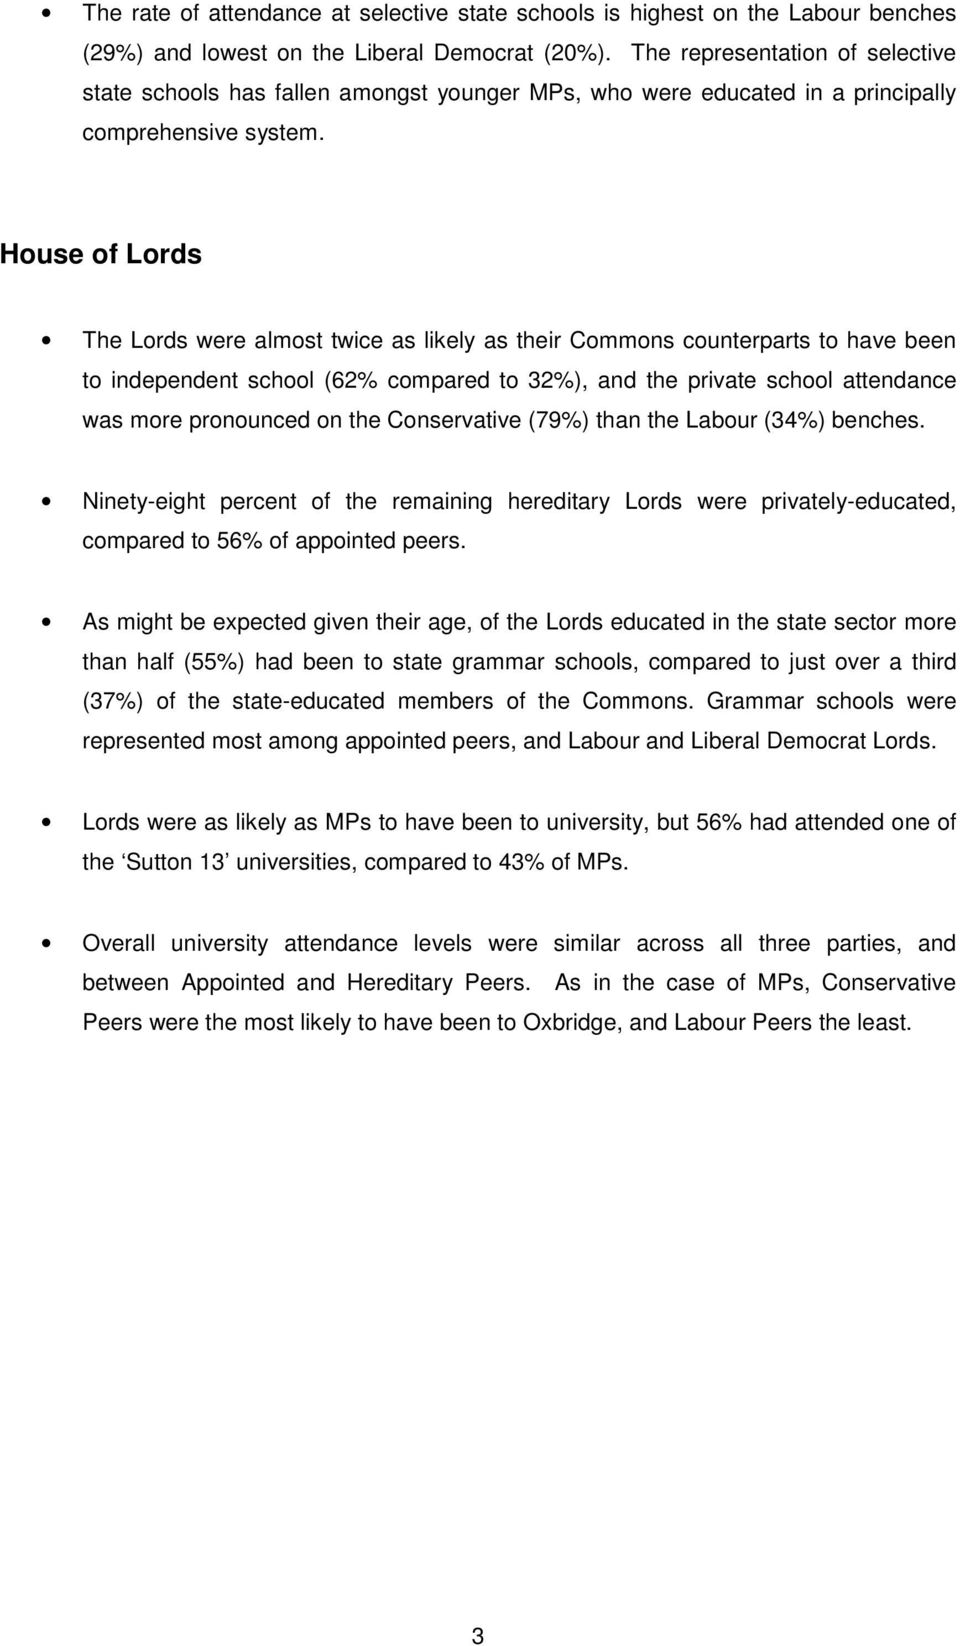 House of Lords The Lords were almost twice as likely as their Commons counterparts to have been to independent school (62% compared to 32%), and the private school attendance was more pronounced on